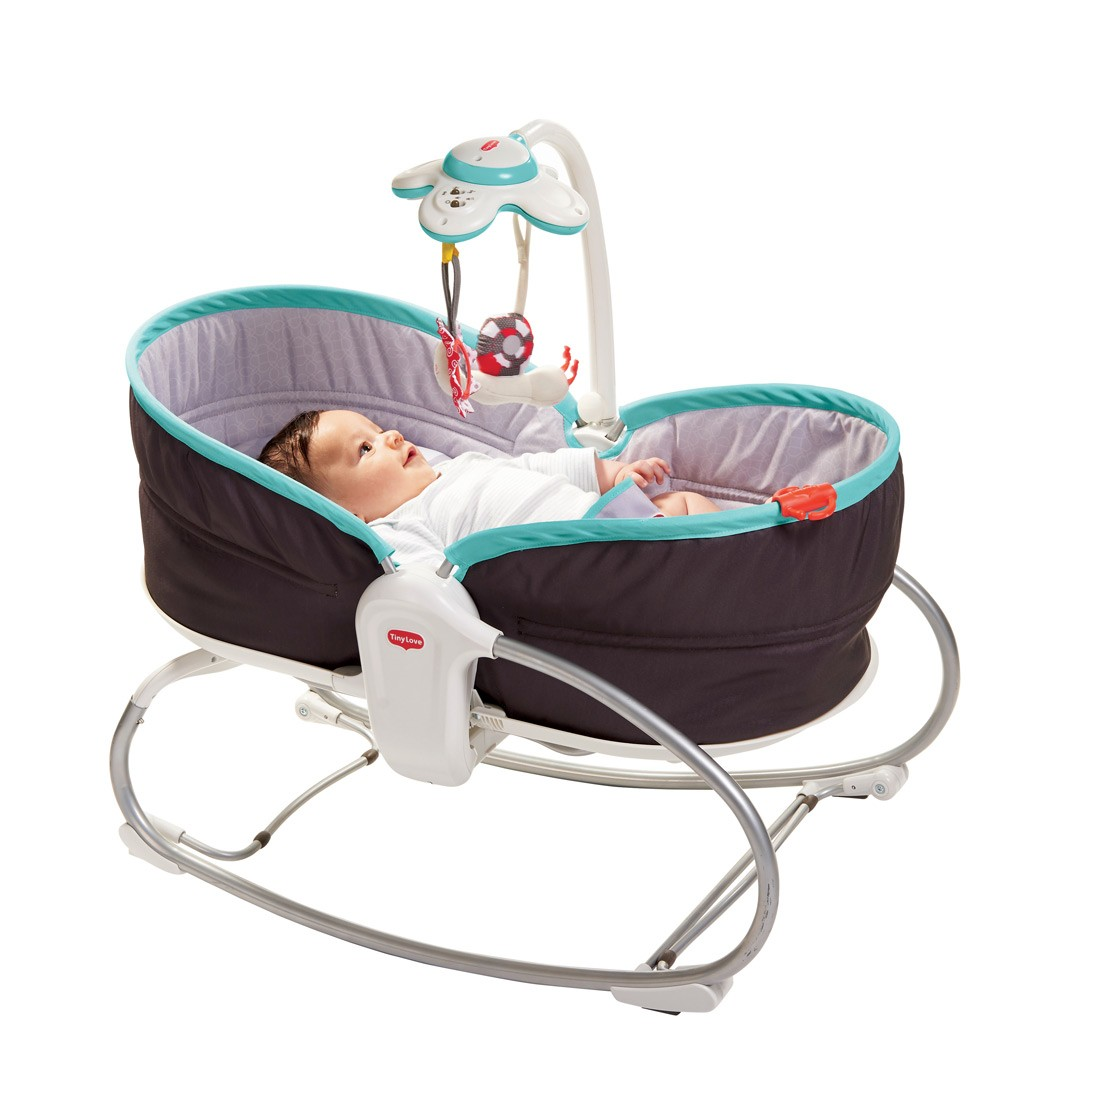 baby chair that vibrates kingpin folding canada tiny love 3 in 1 rocking vibrating bouncy moses basket